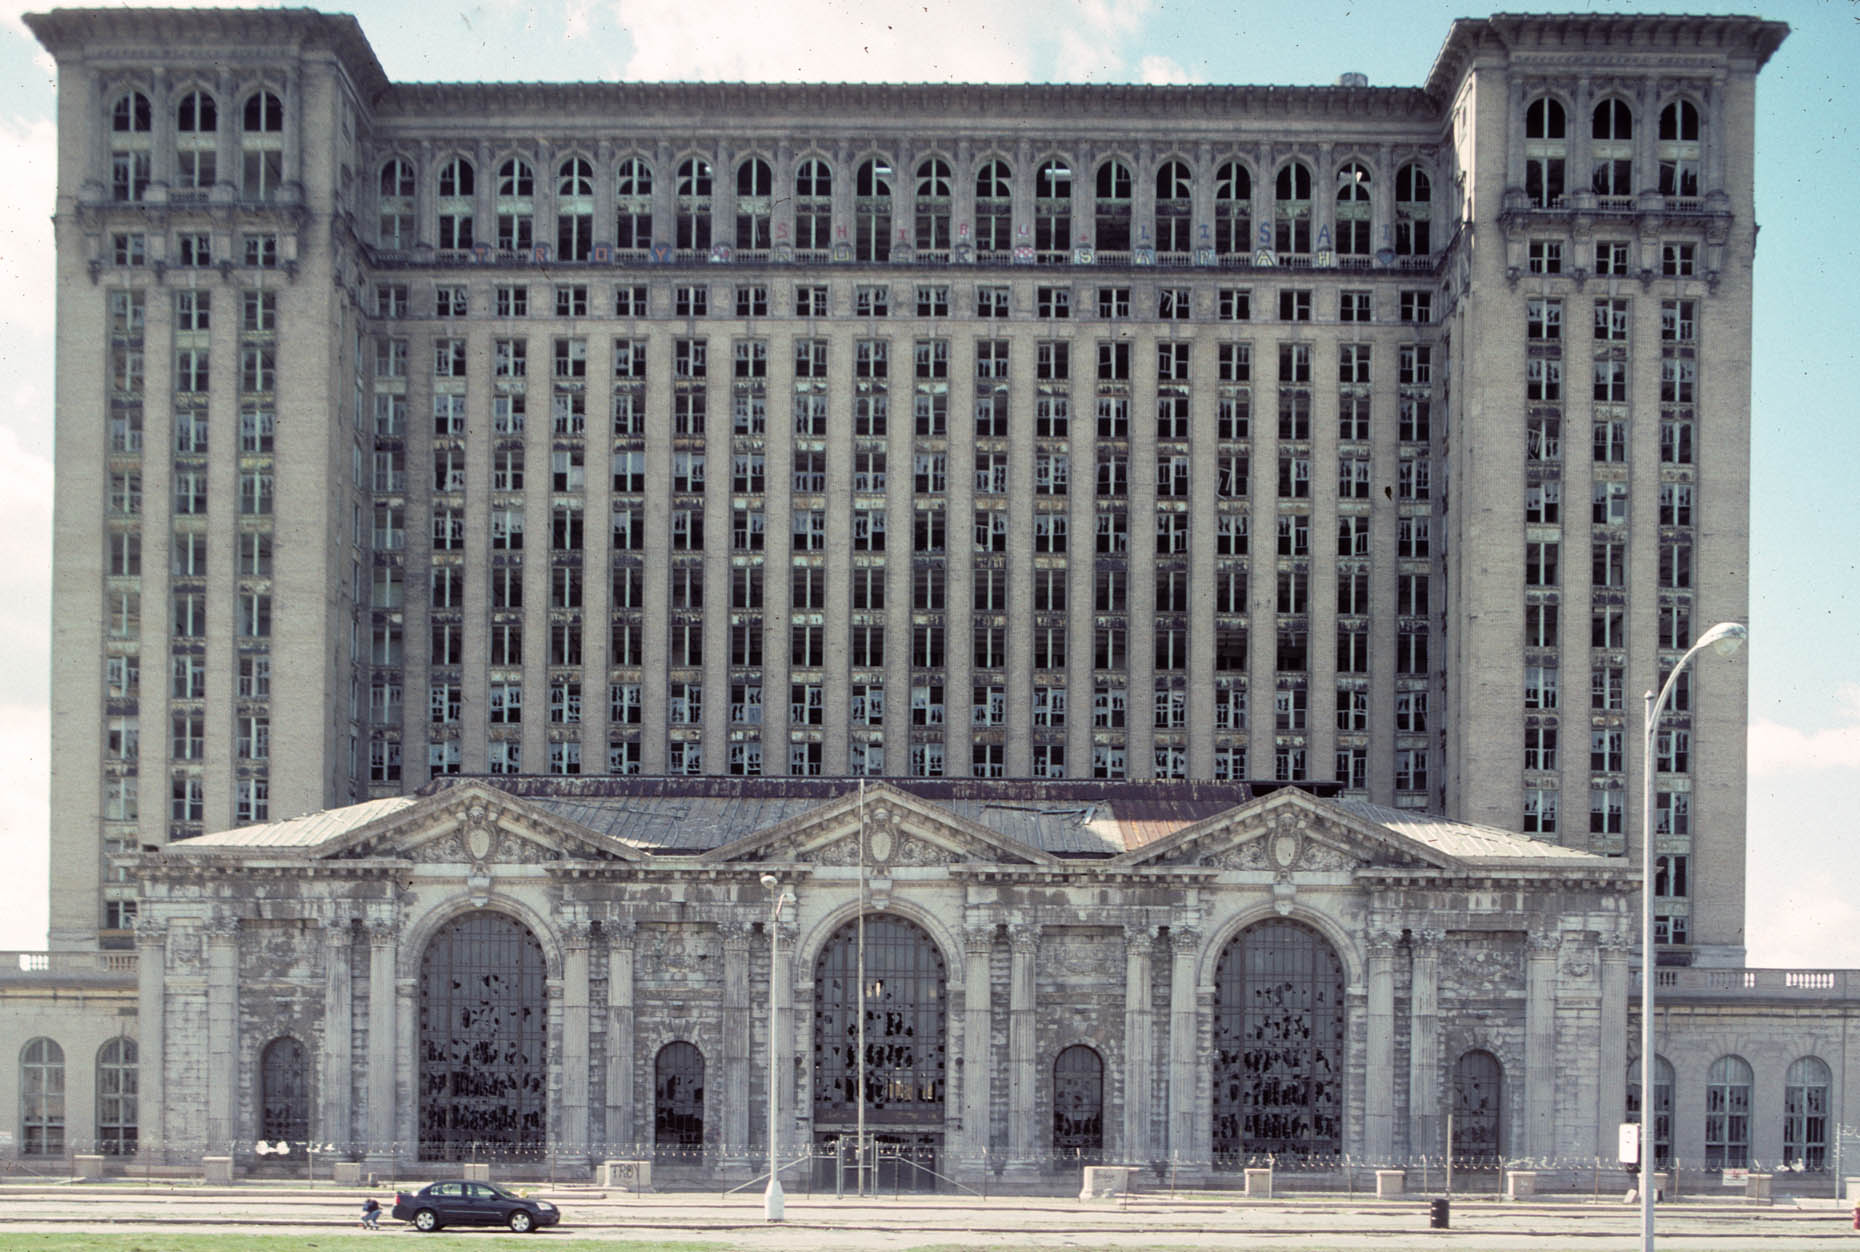 04_Former Michigan Central Rail Road Station, Detroit, 2006_-DUP.jpg